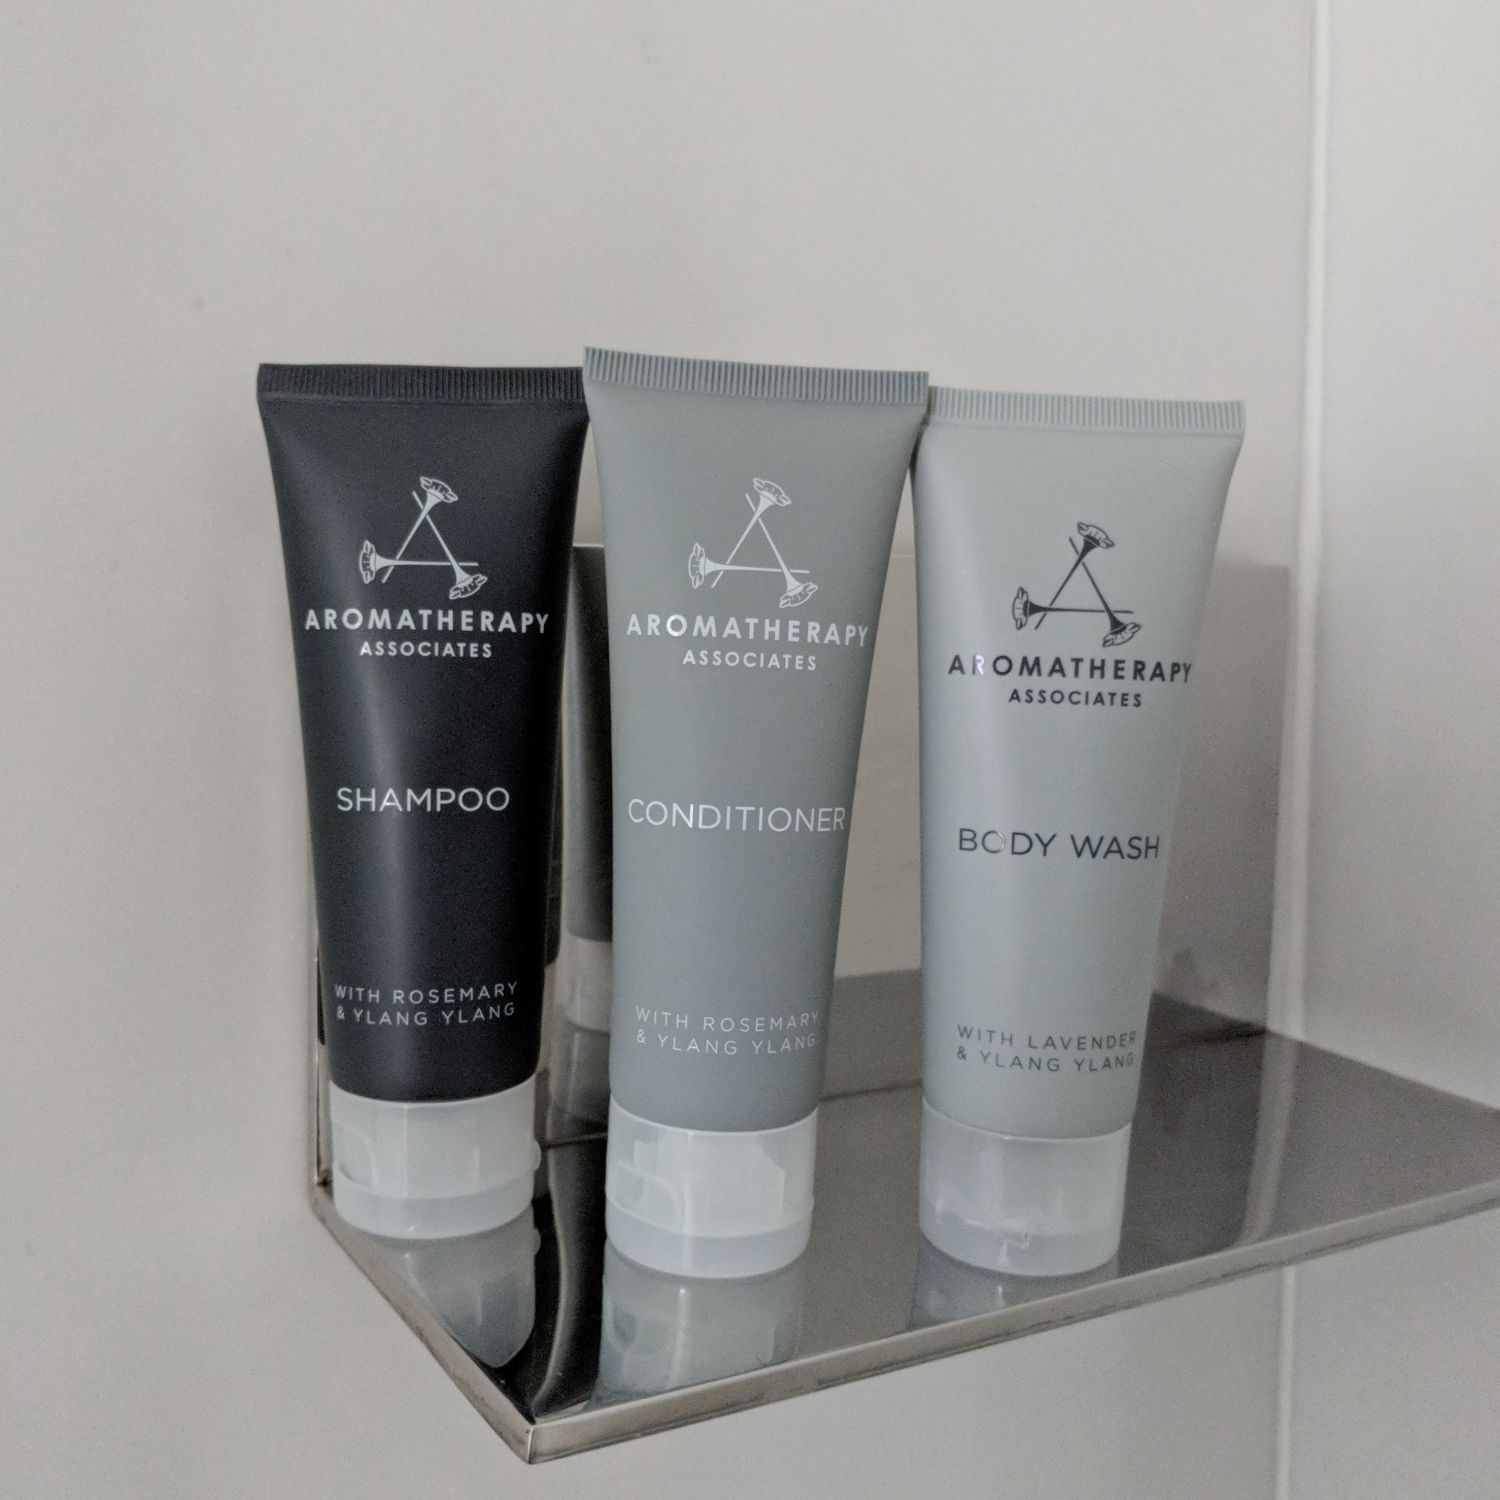 jw marriott singapore south beach executive suite with premier marina bay view bathroom amenities